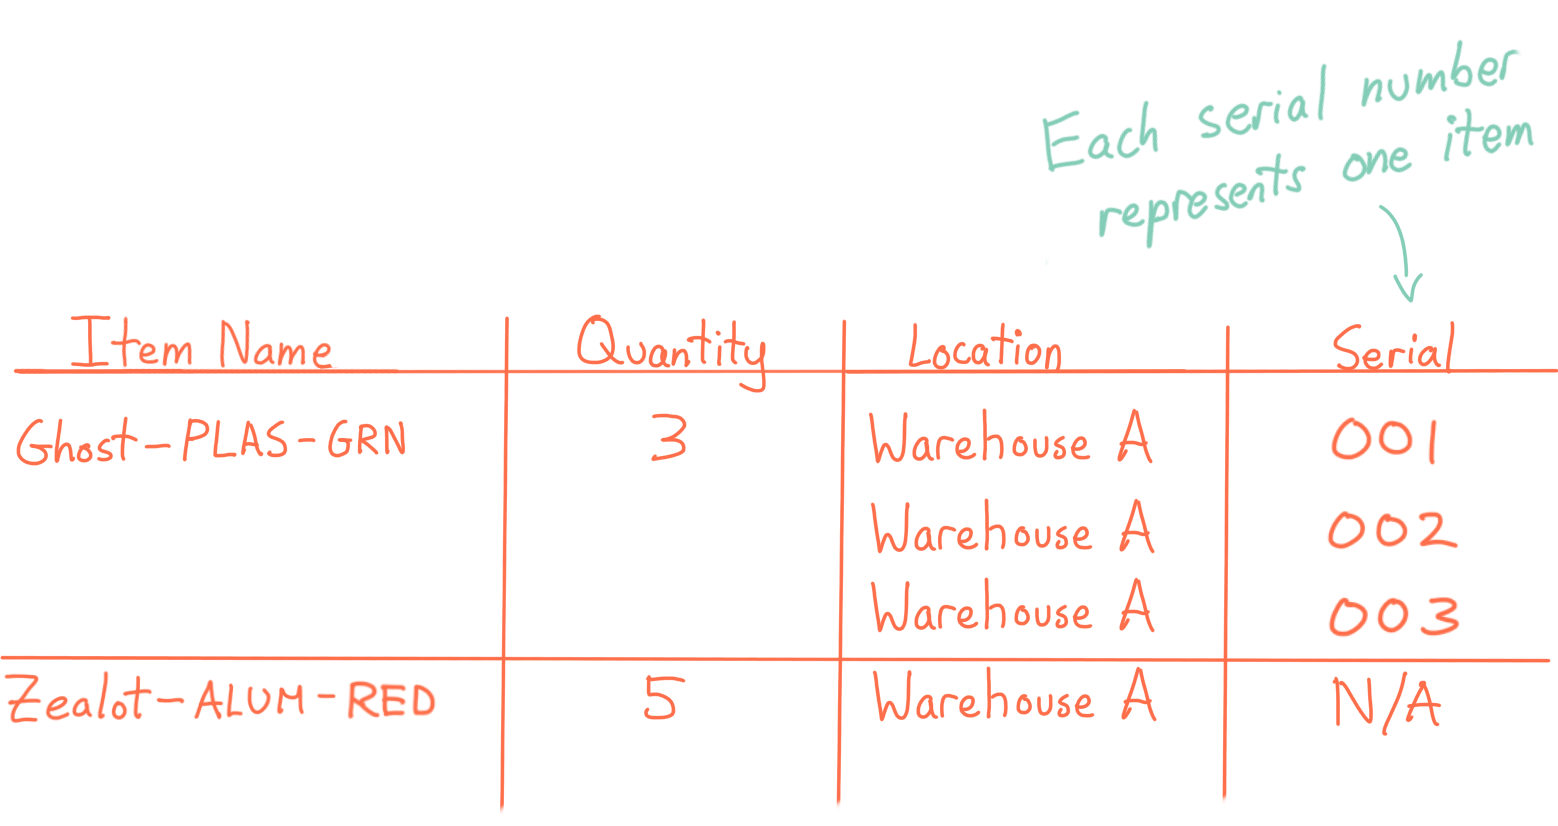 Drawing of a product list: showing item name, quantity, location, and a unique serial number for each serialized item